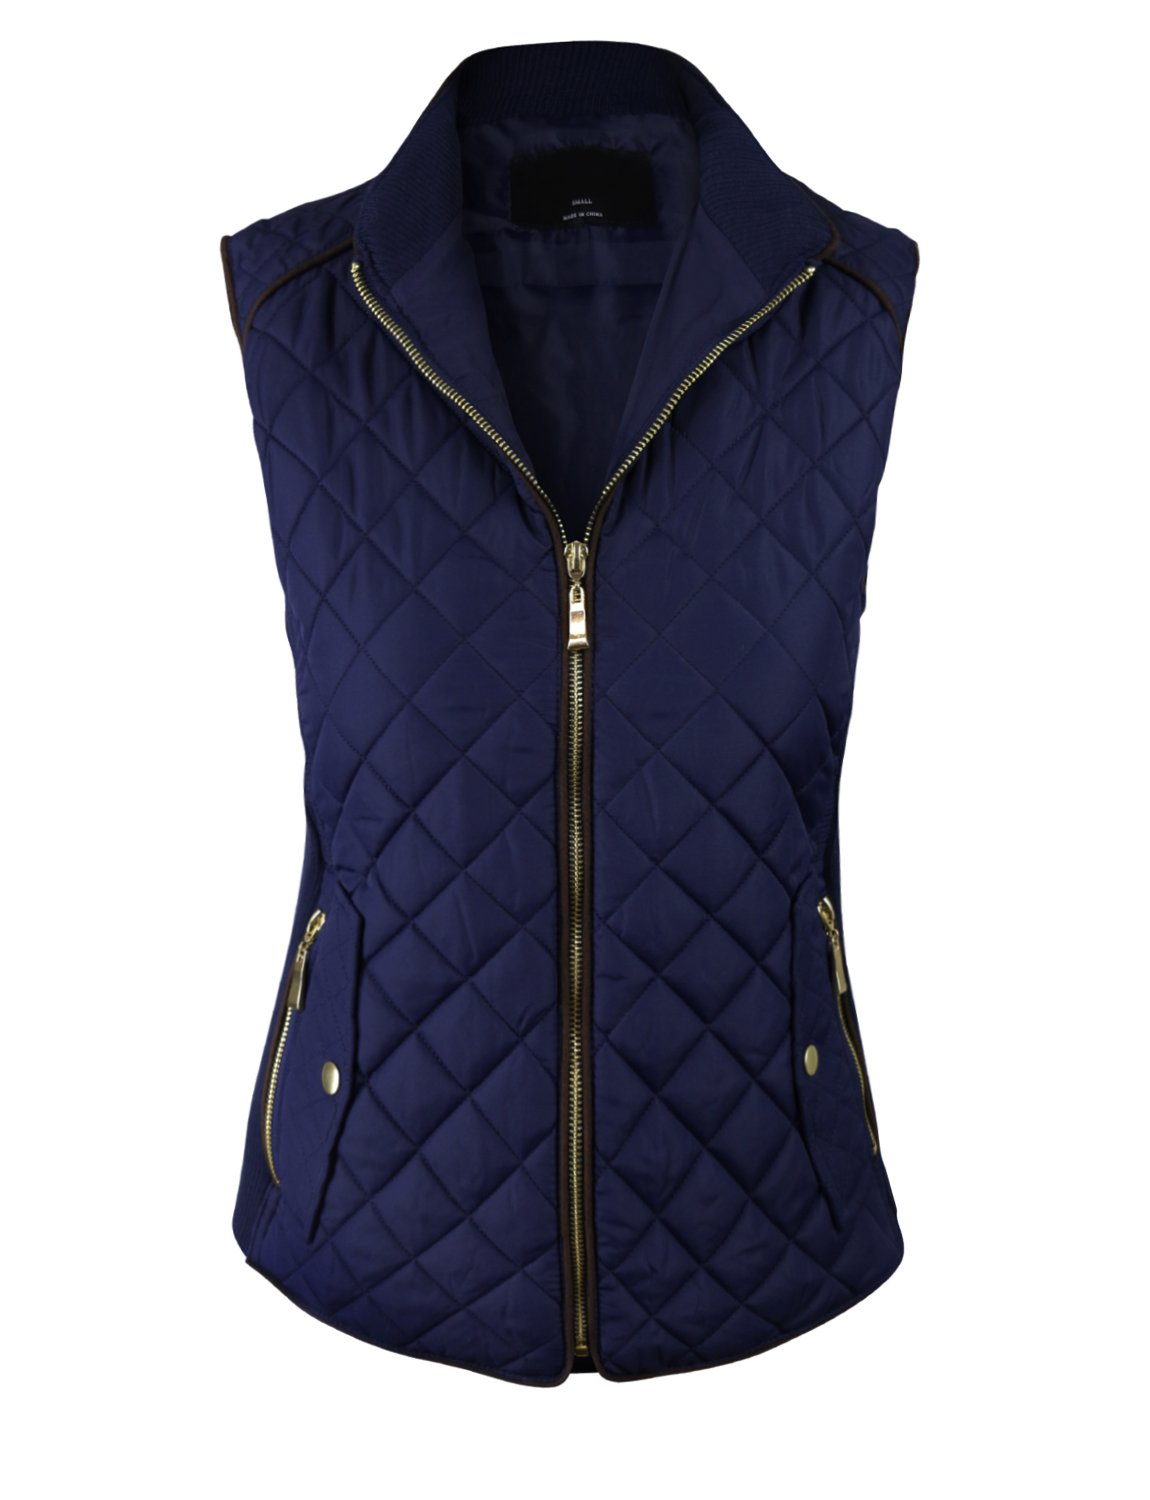 makeitmint Women's Basic Solid Quilted Padding Jacket Vest w/ Pockets Large YJV0002_Navy